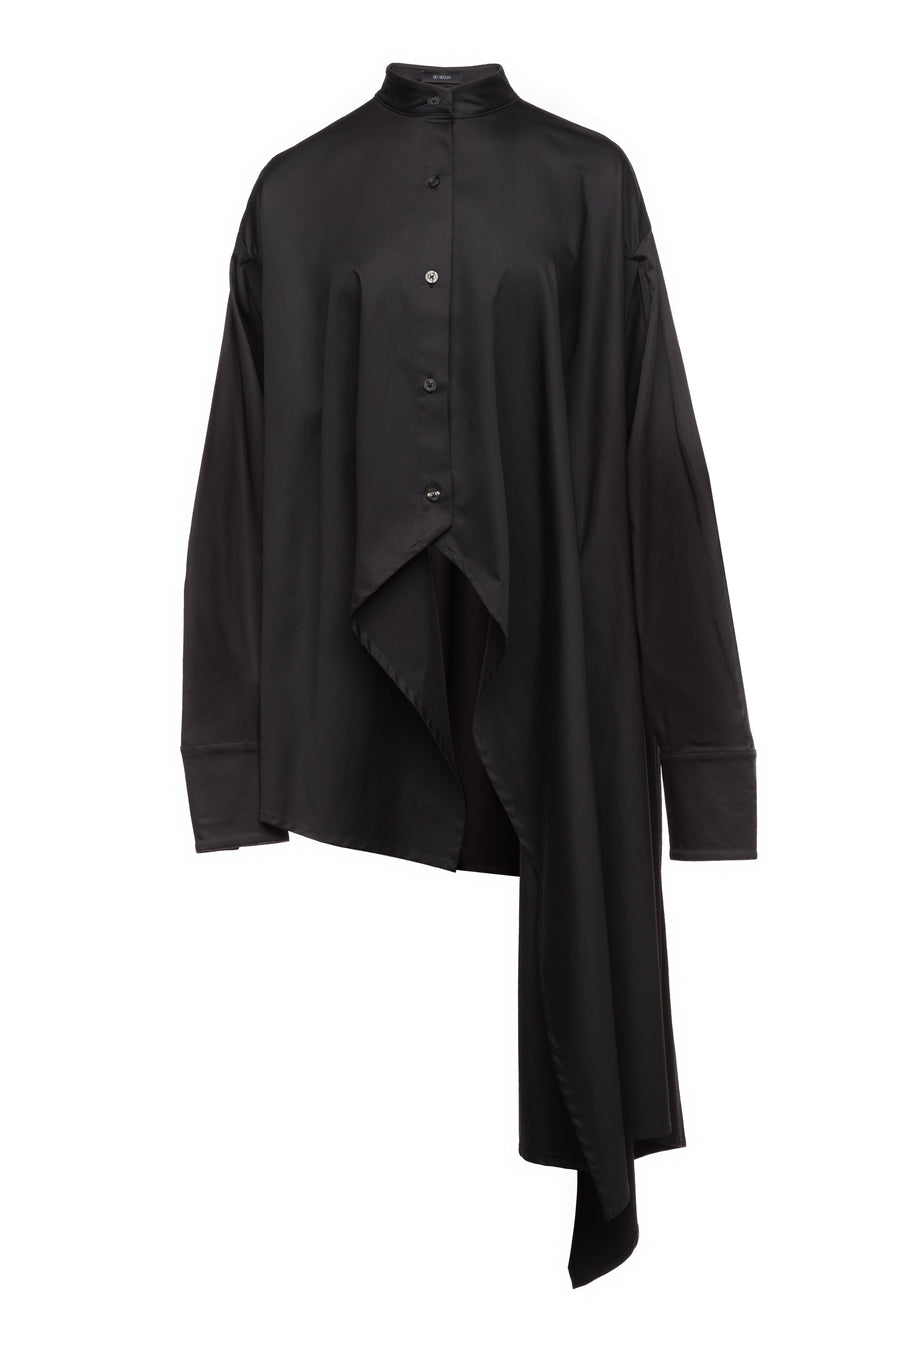 Sid Neigum Oversized Asymmetrical Button-Up Off Figure FW19